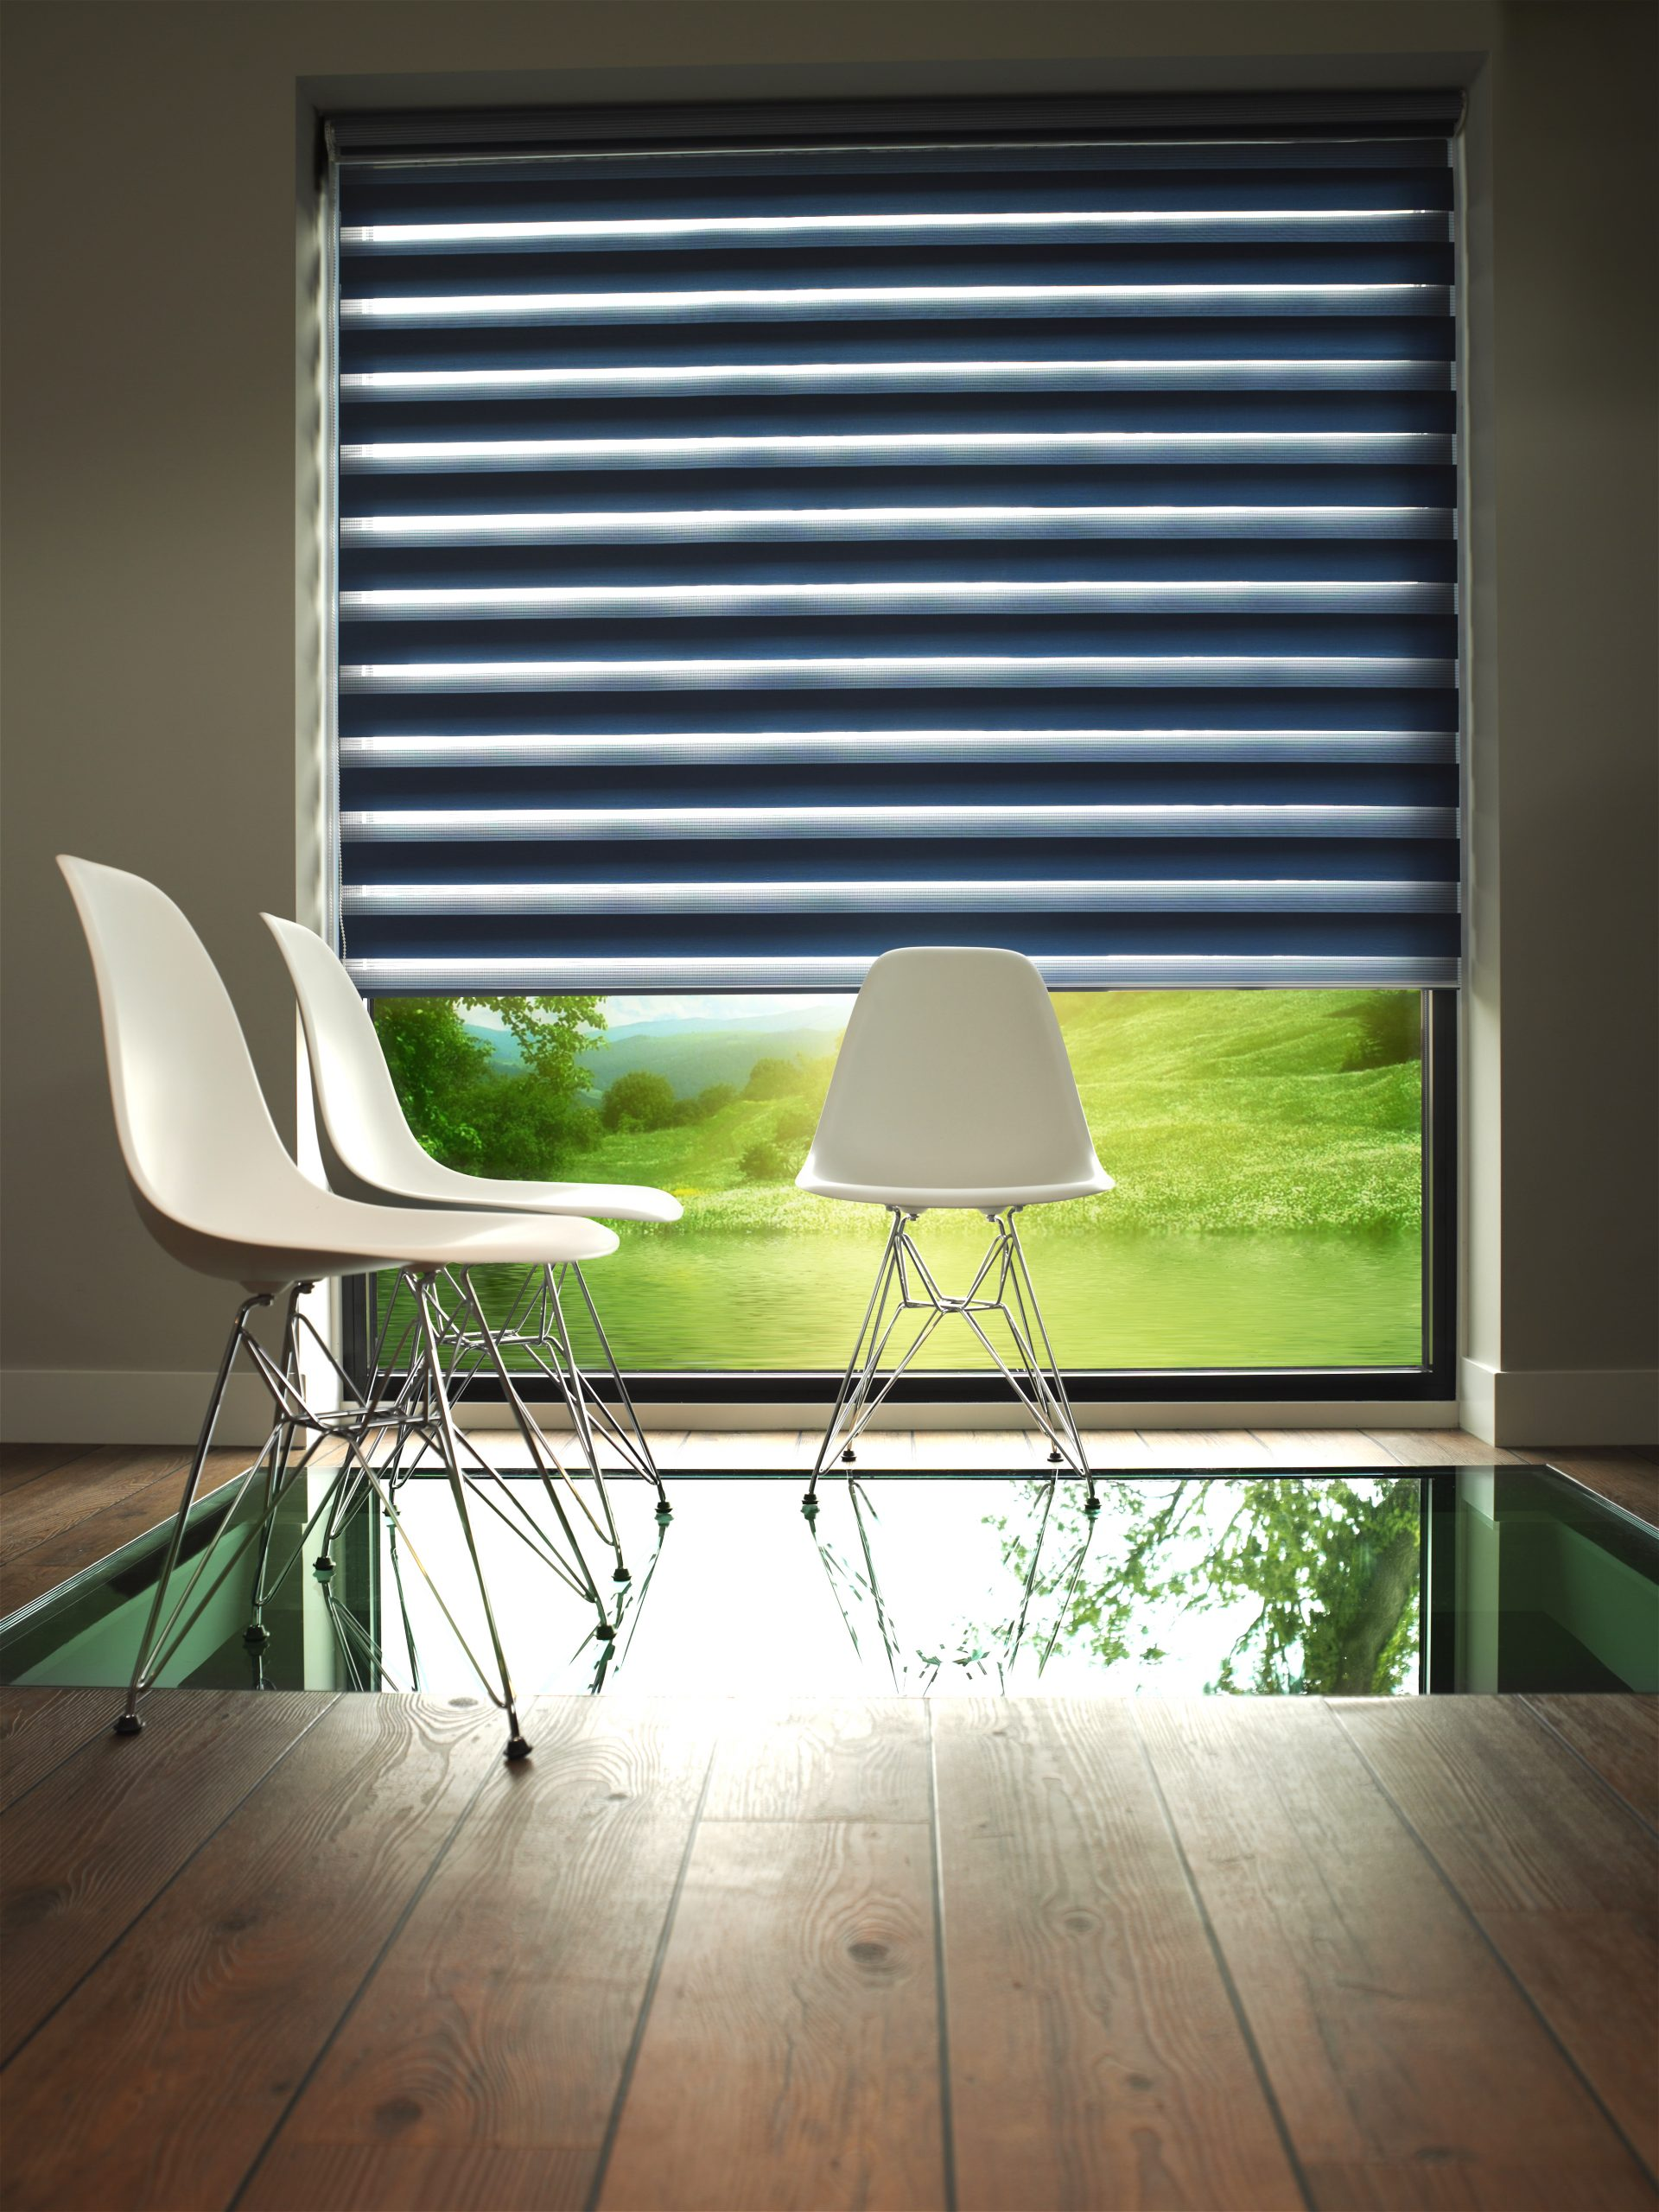 color day and night blinds London